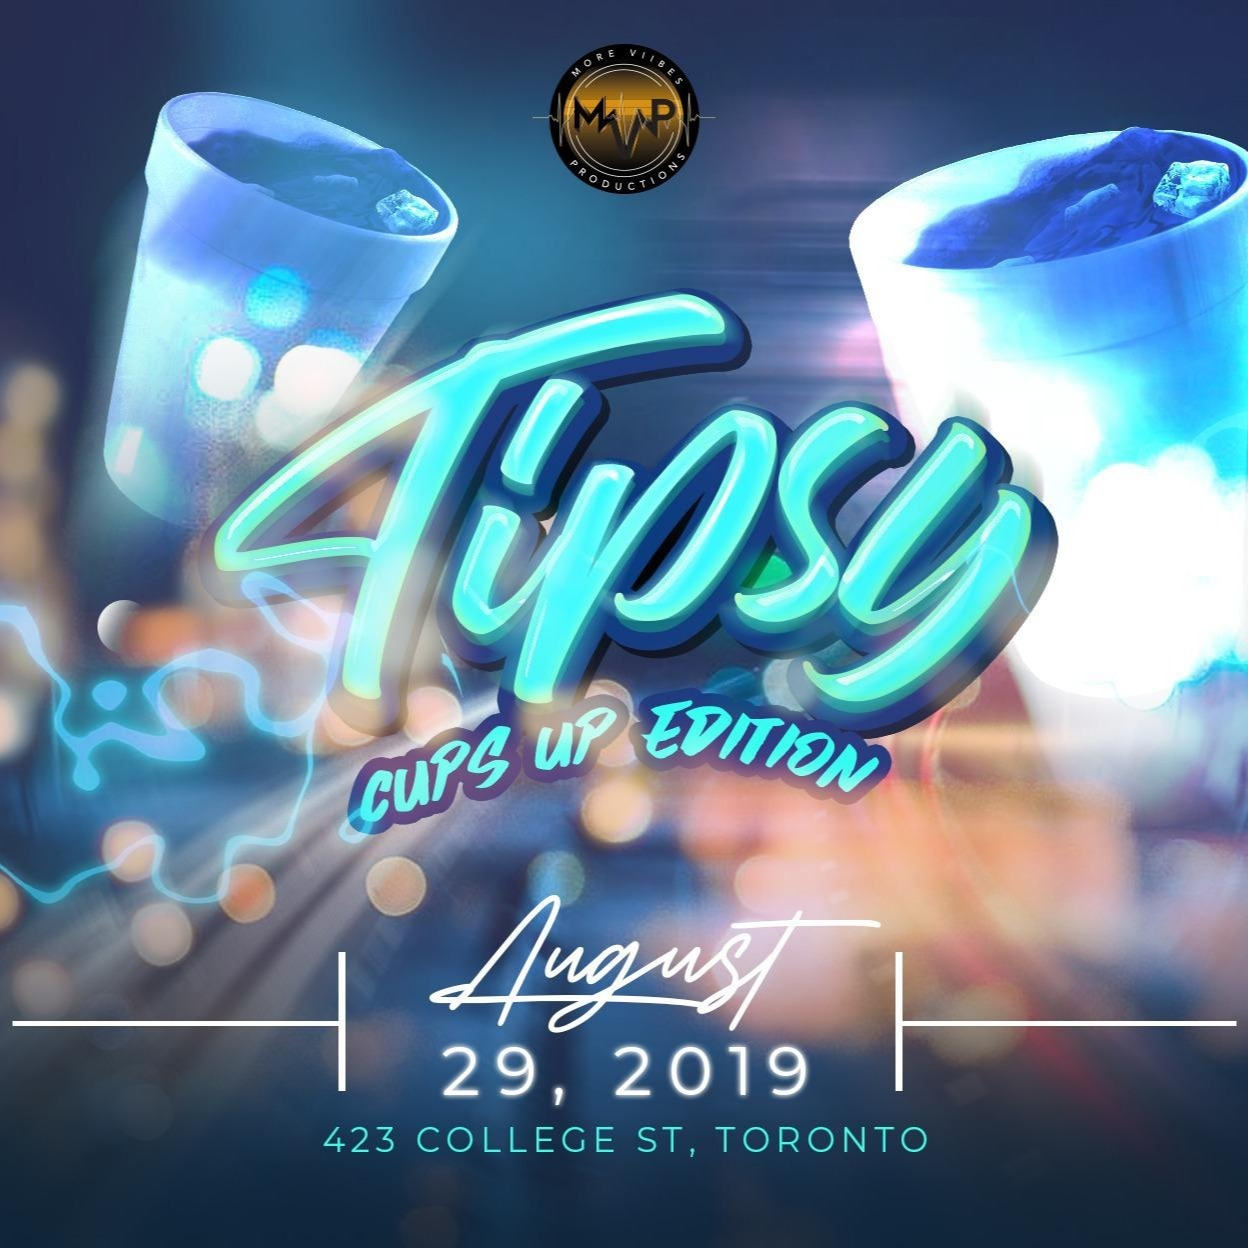 Tipsy Cups Up Edition